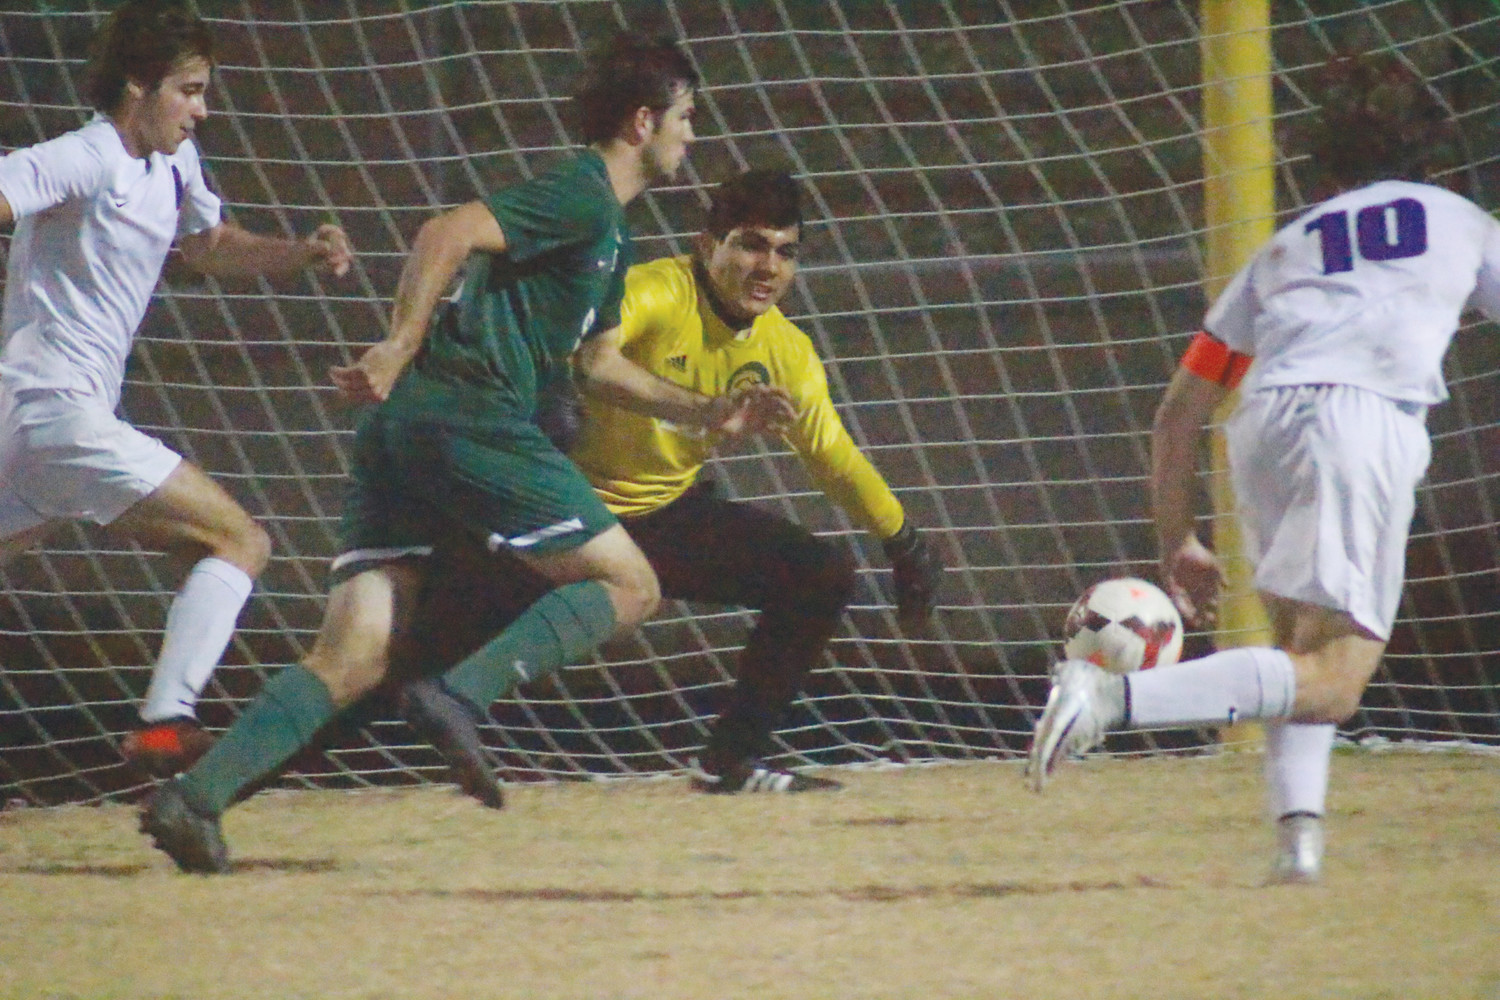 Staff photos by Randy Lefko